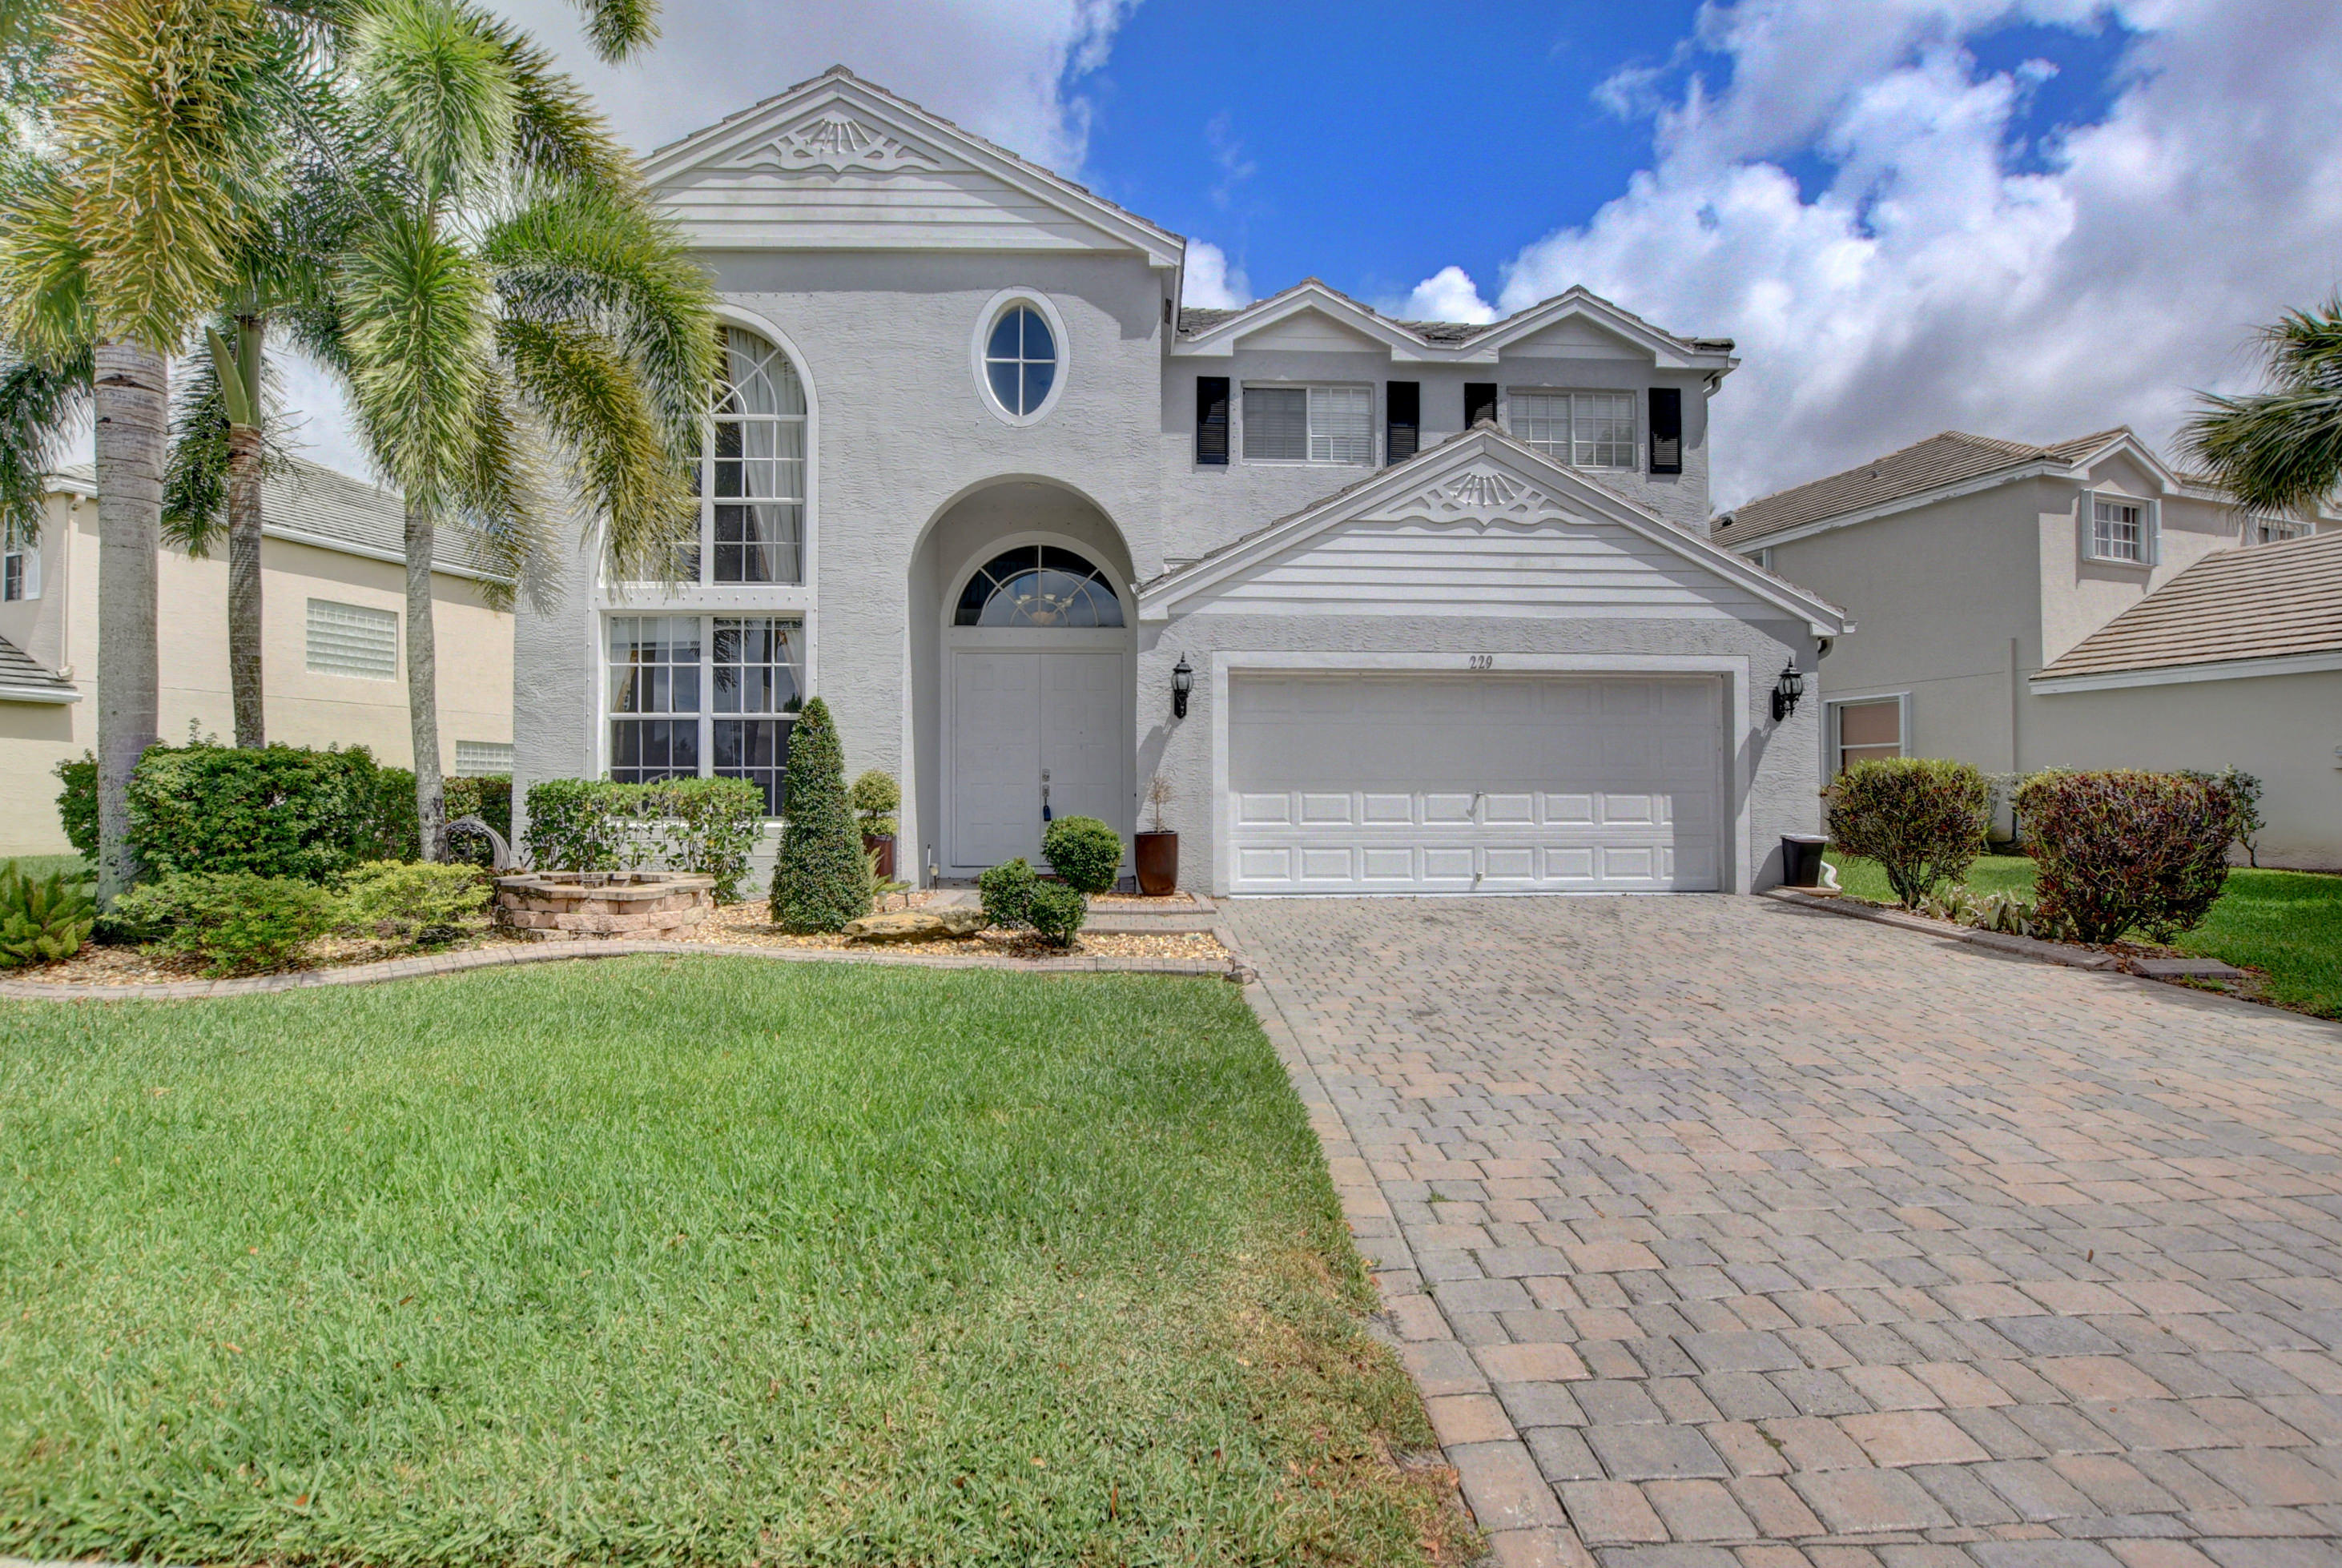 229 Kensington Way Royal Palm Beach, FL 33414